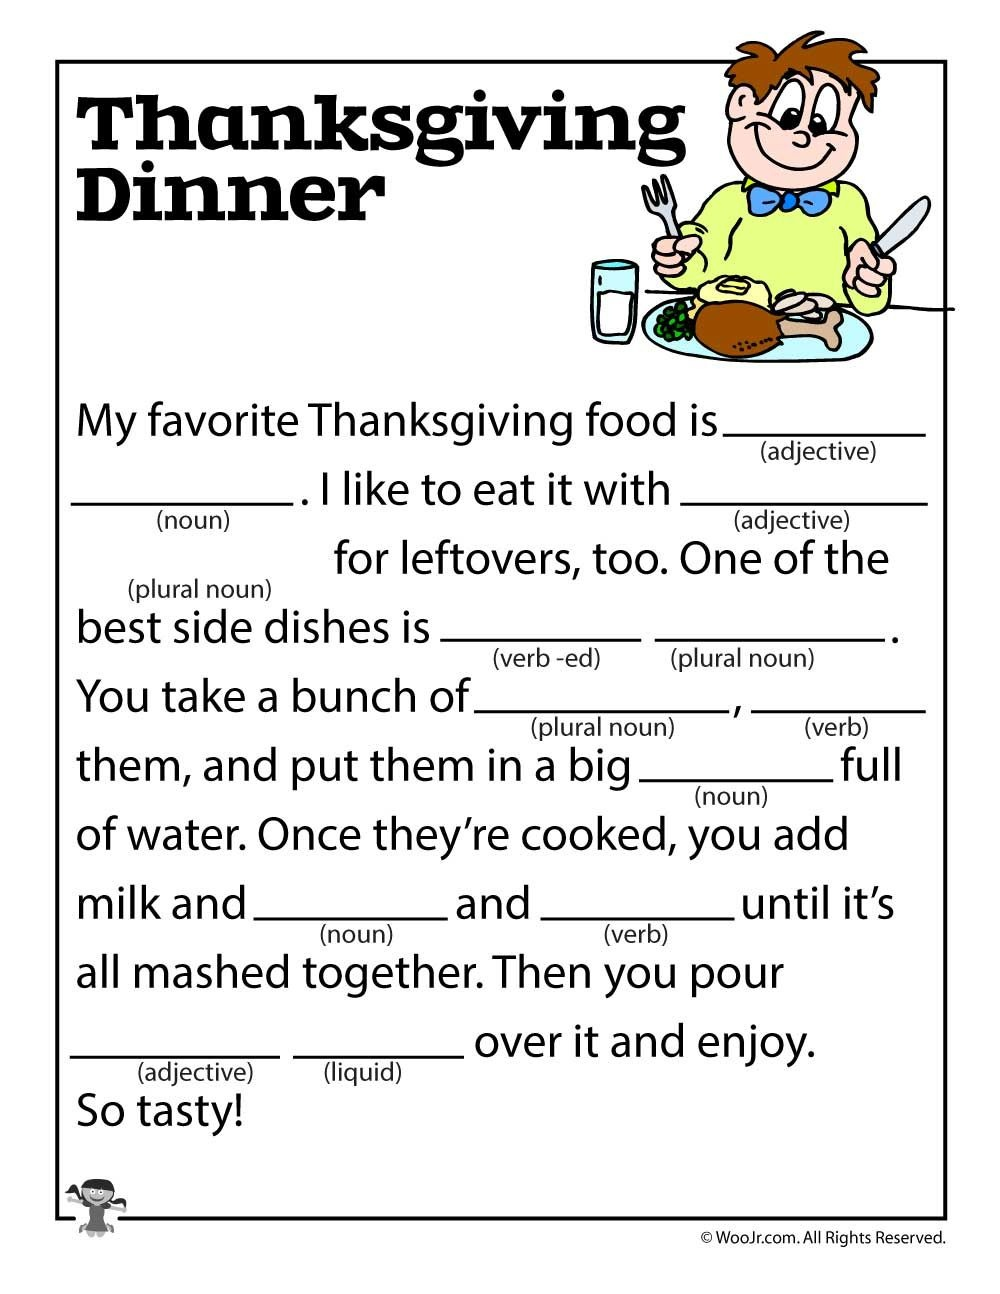 Thanksgiving Dinner Mad Lib | Esl | Mad Libs For Adults - Free Printable Thanksgiving Mad Libs